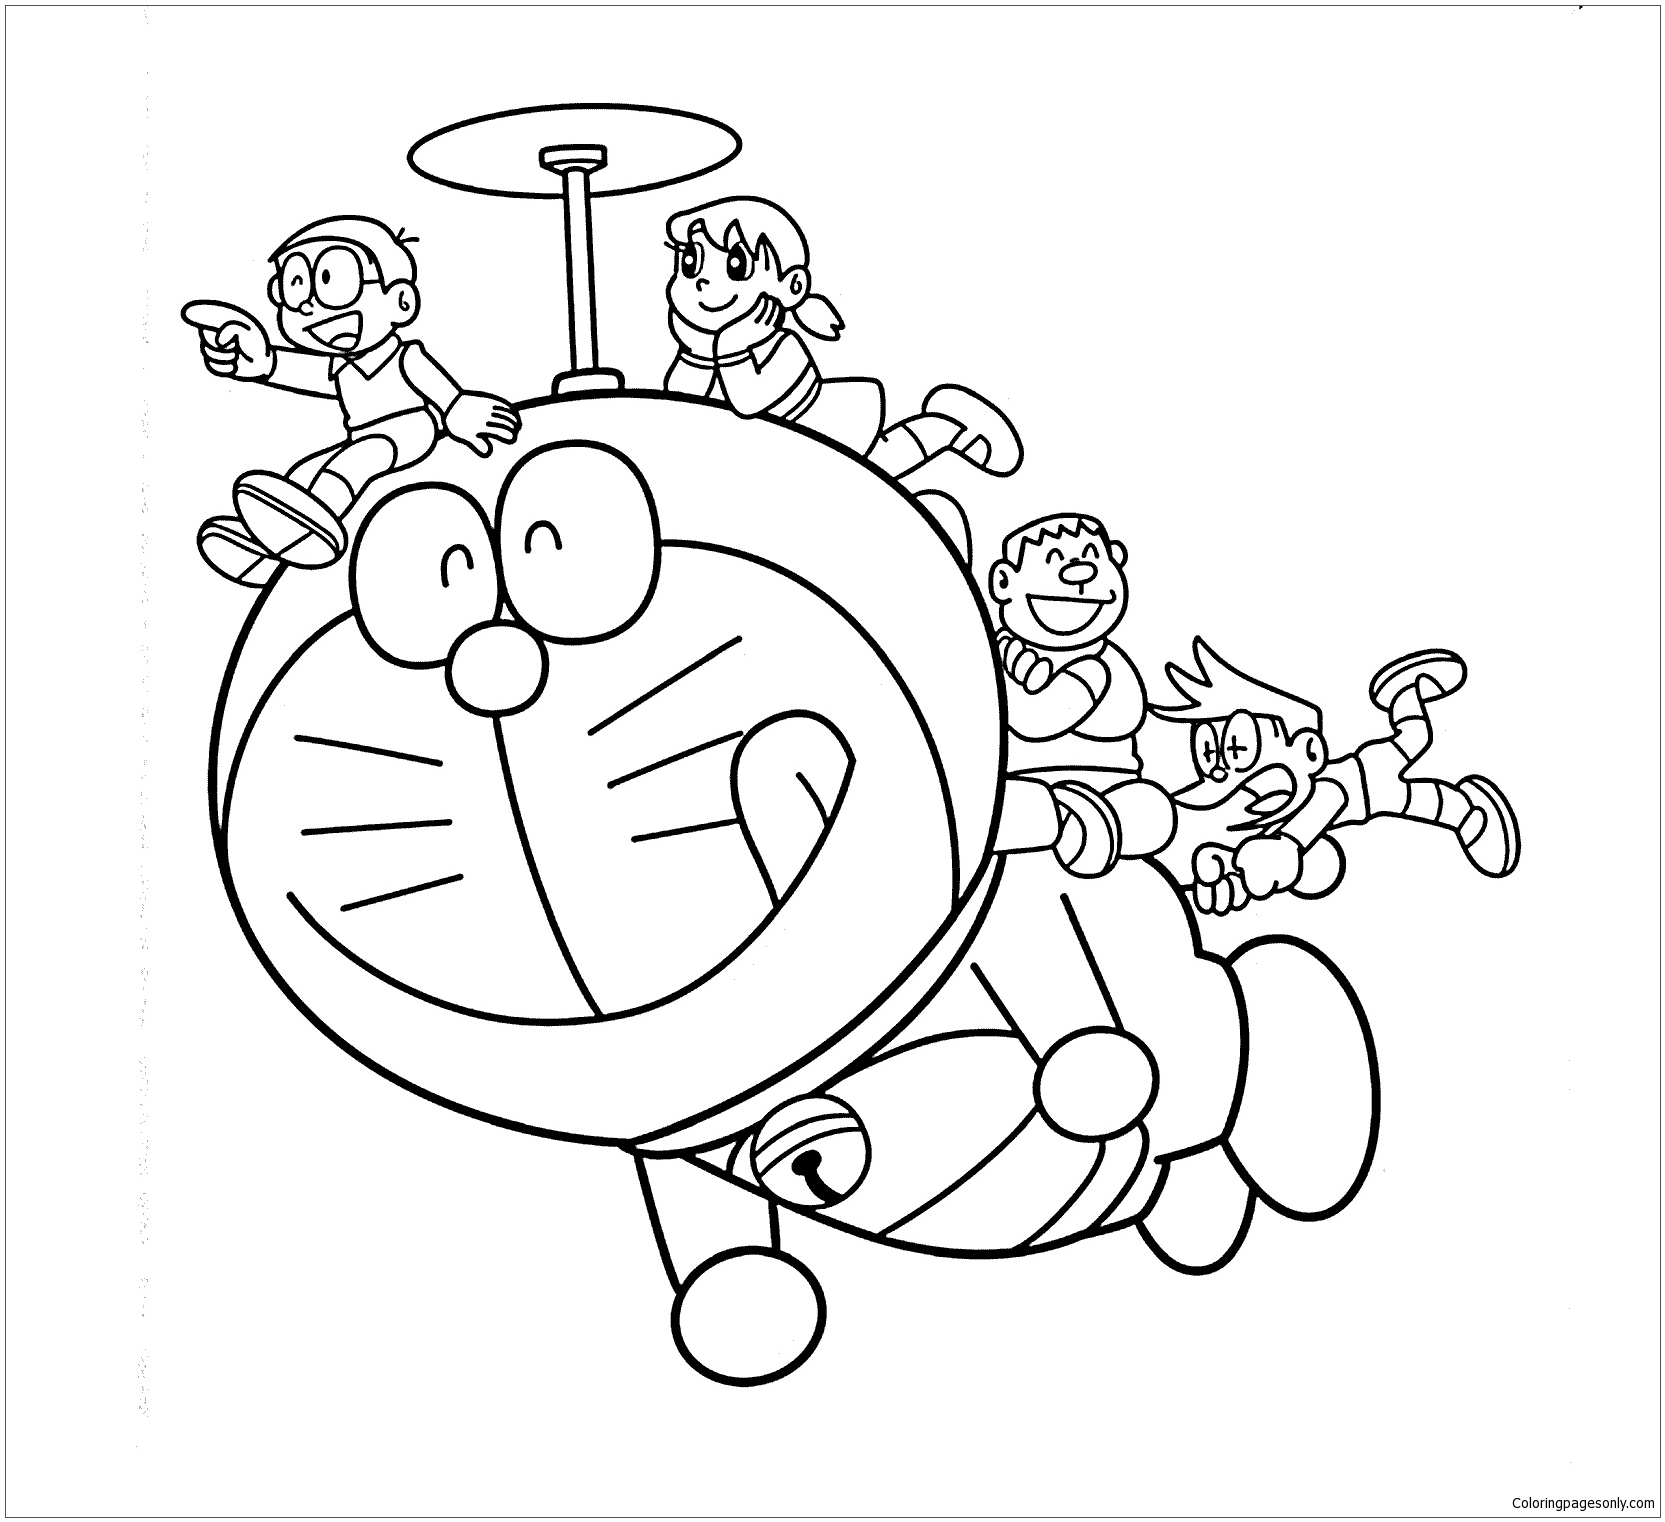 Doraemon Helicopter Coloring Page Free Coloring Pages Online Helicopter Coloring Page